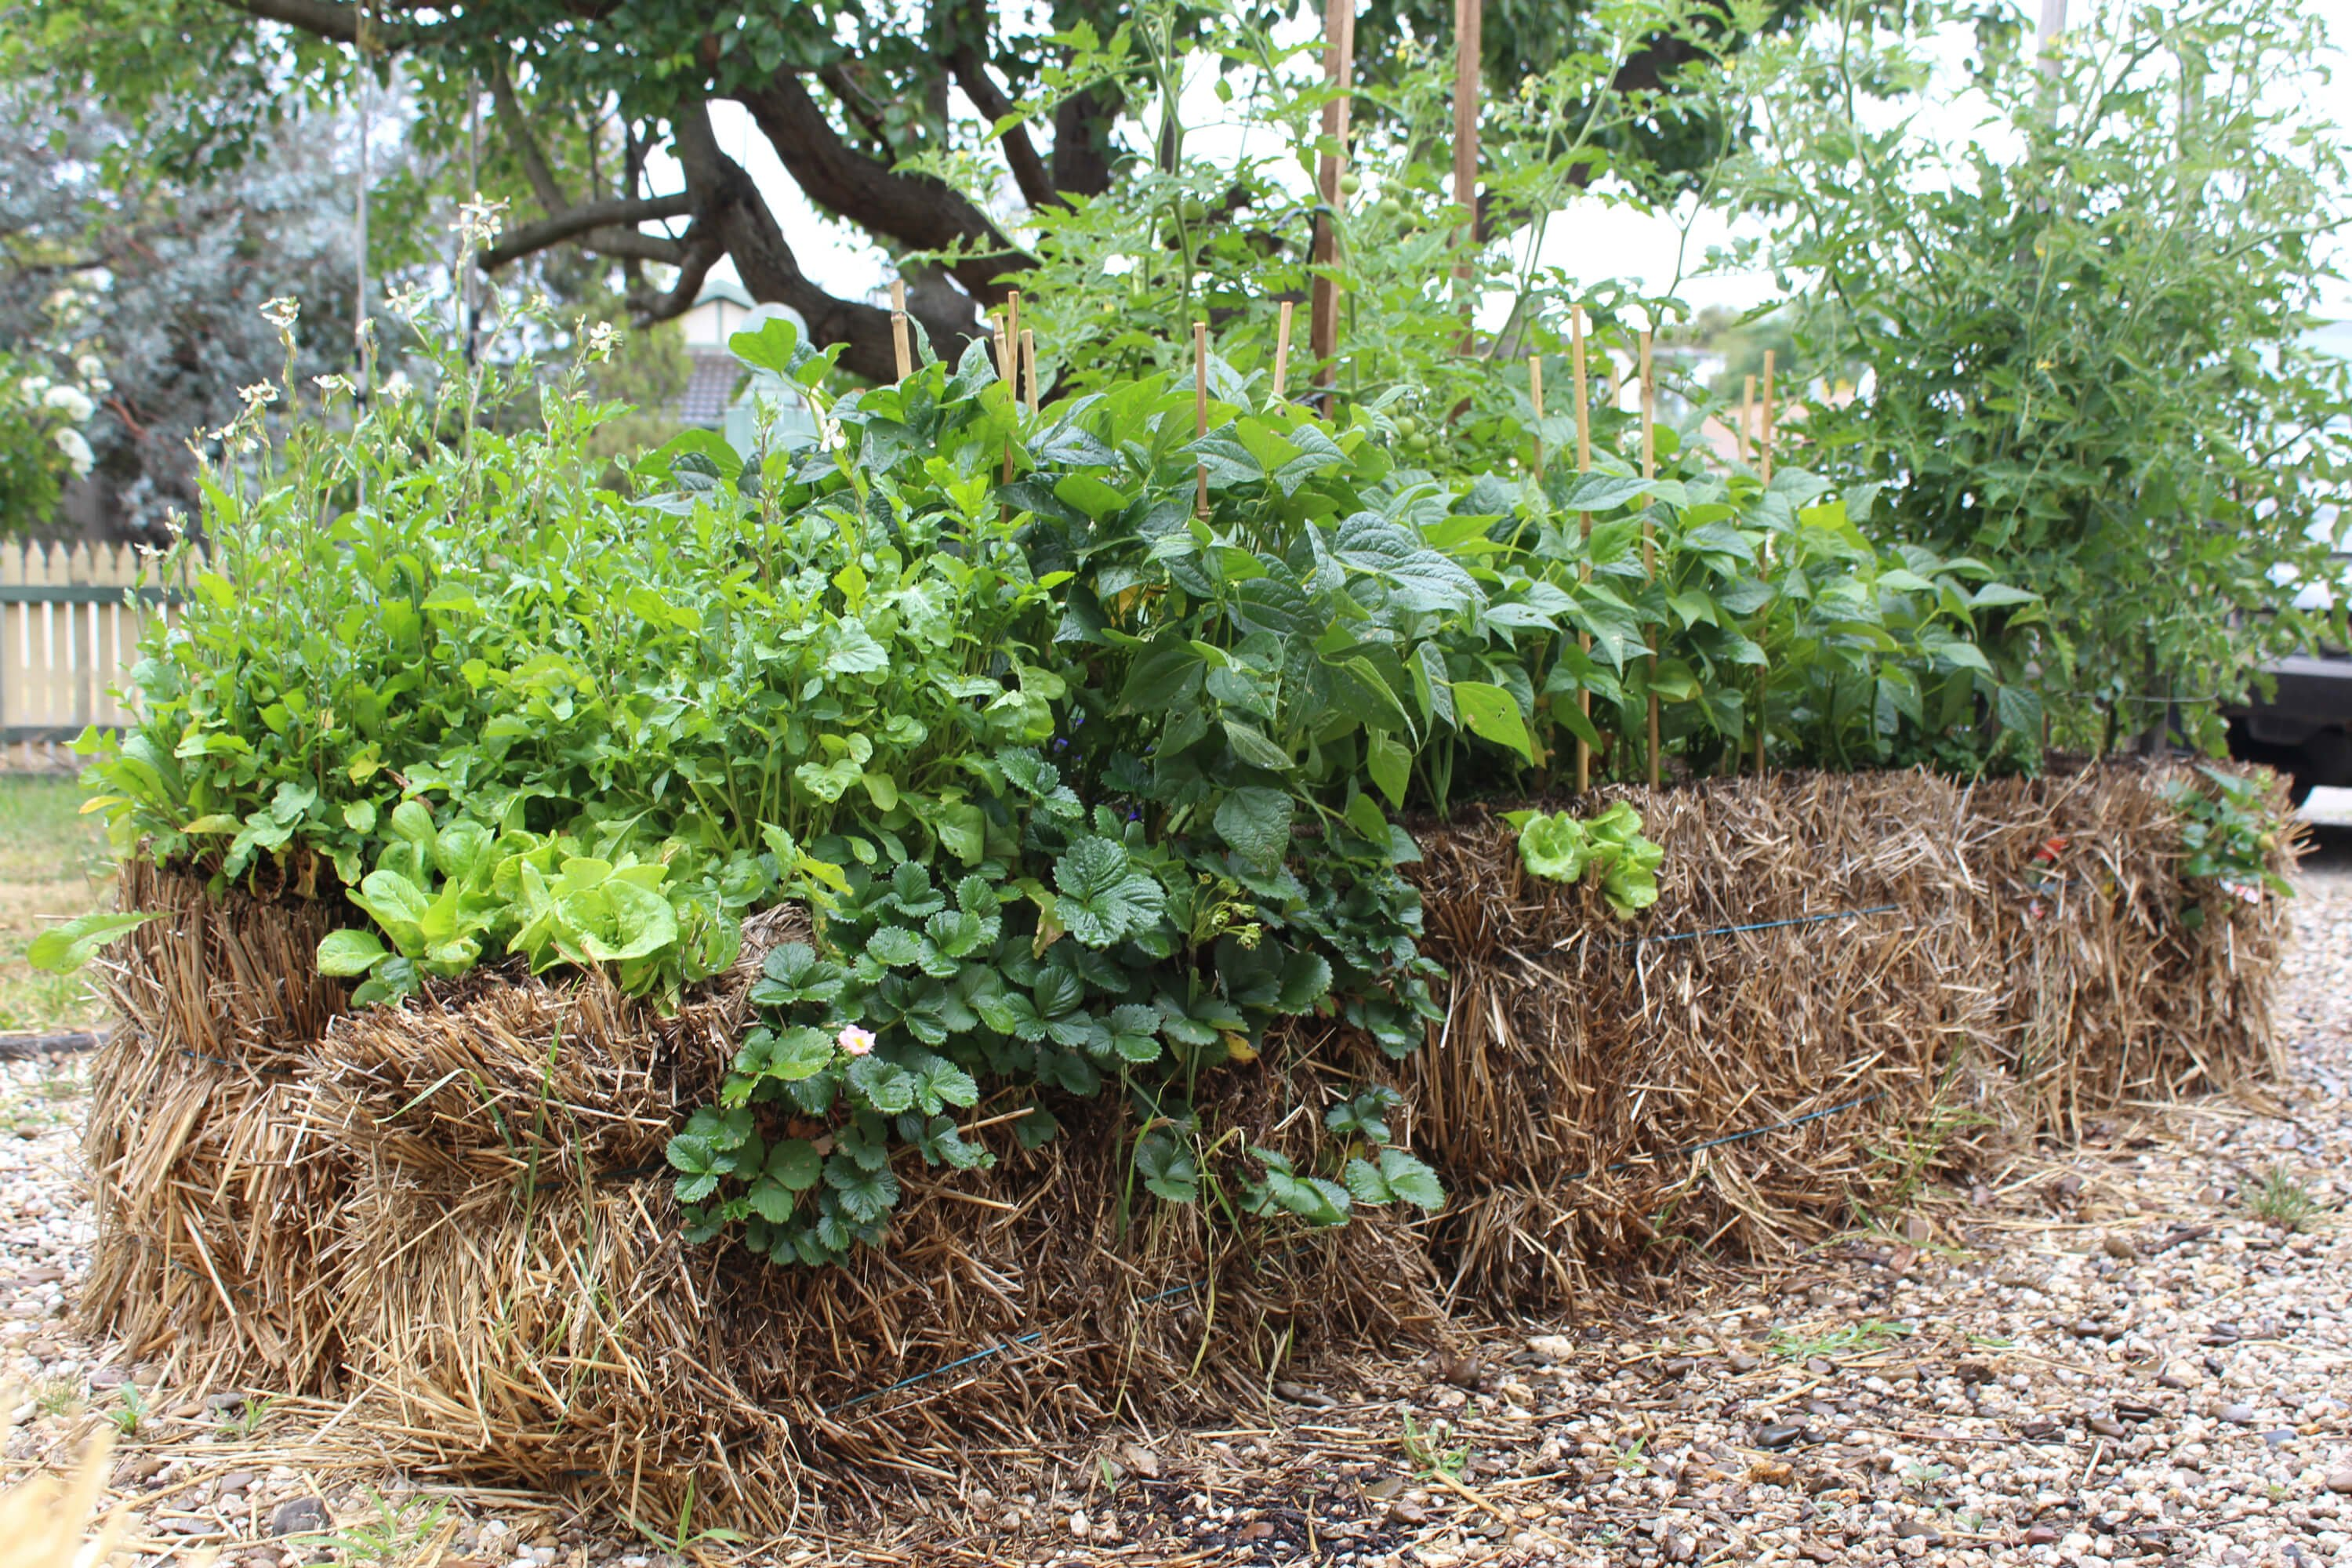 Strawbale garden - Balegrow early learning program